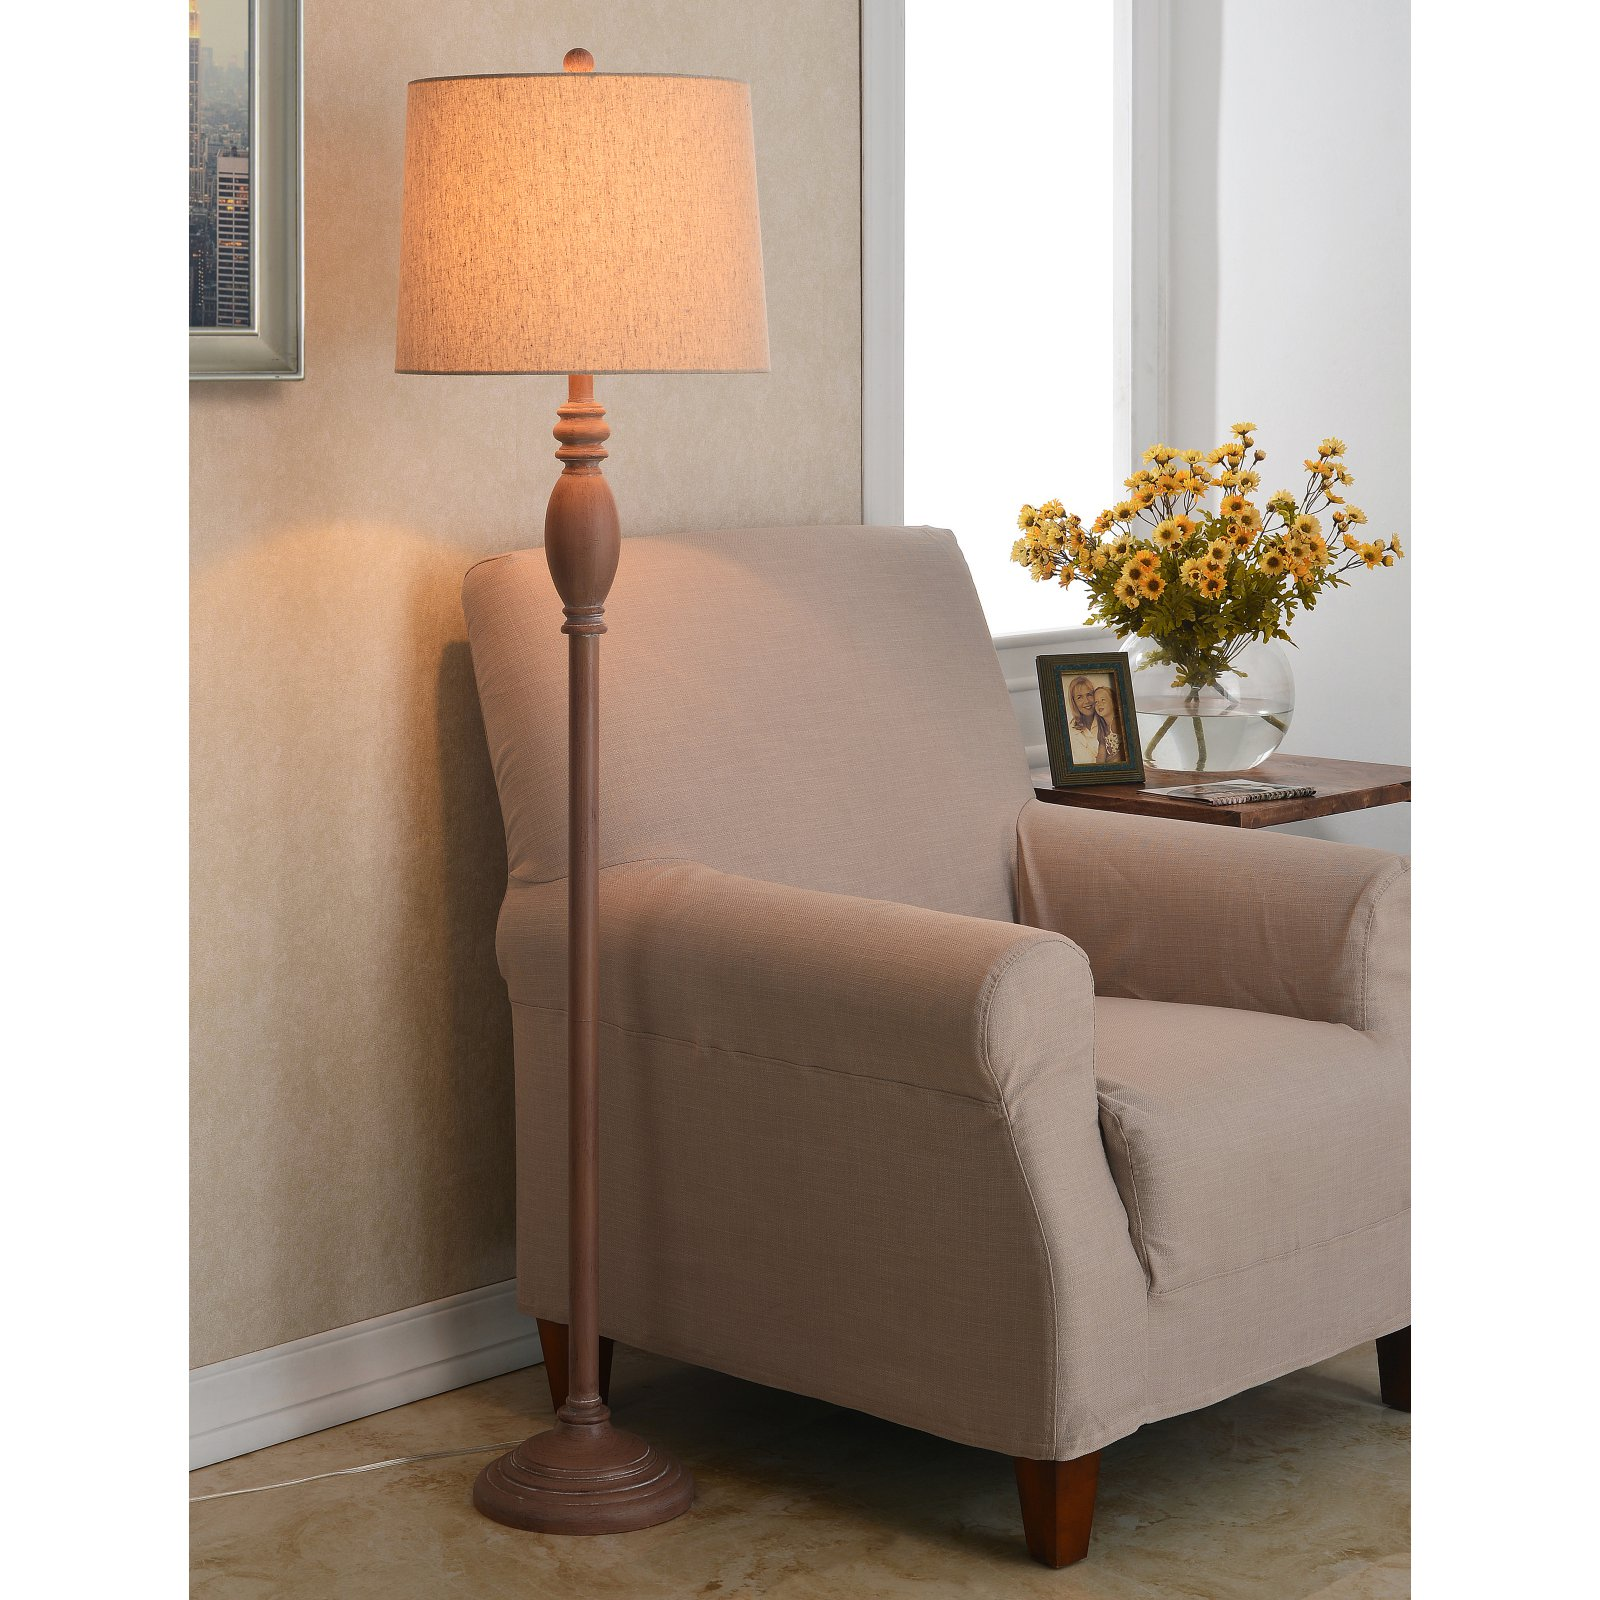 Kenroy Home Channing Light Wood Grain Floor Lamp by Kenroy Home